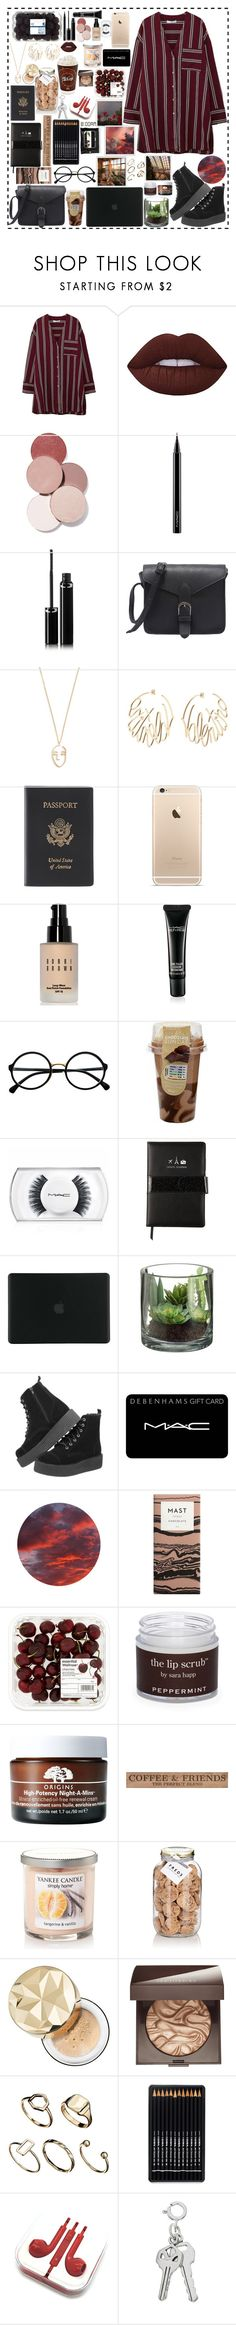 """""""Back in Red"""" by edelintess on Polyvore featuring MANGO, Lime Crime, LunatiCK Cosmetic Labs, MAC Cosmetics, Sisley, Amber Sceats, Valentino, Royce Leather, Bobbi Brown Cosmetics and Retrò"""